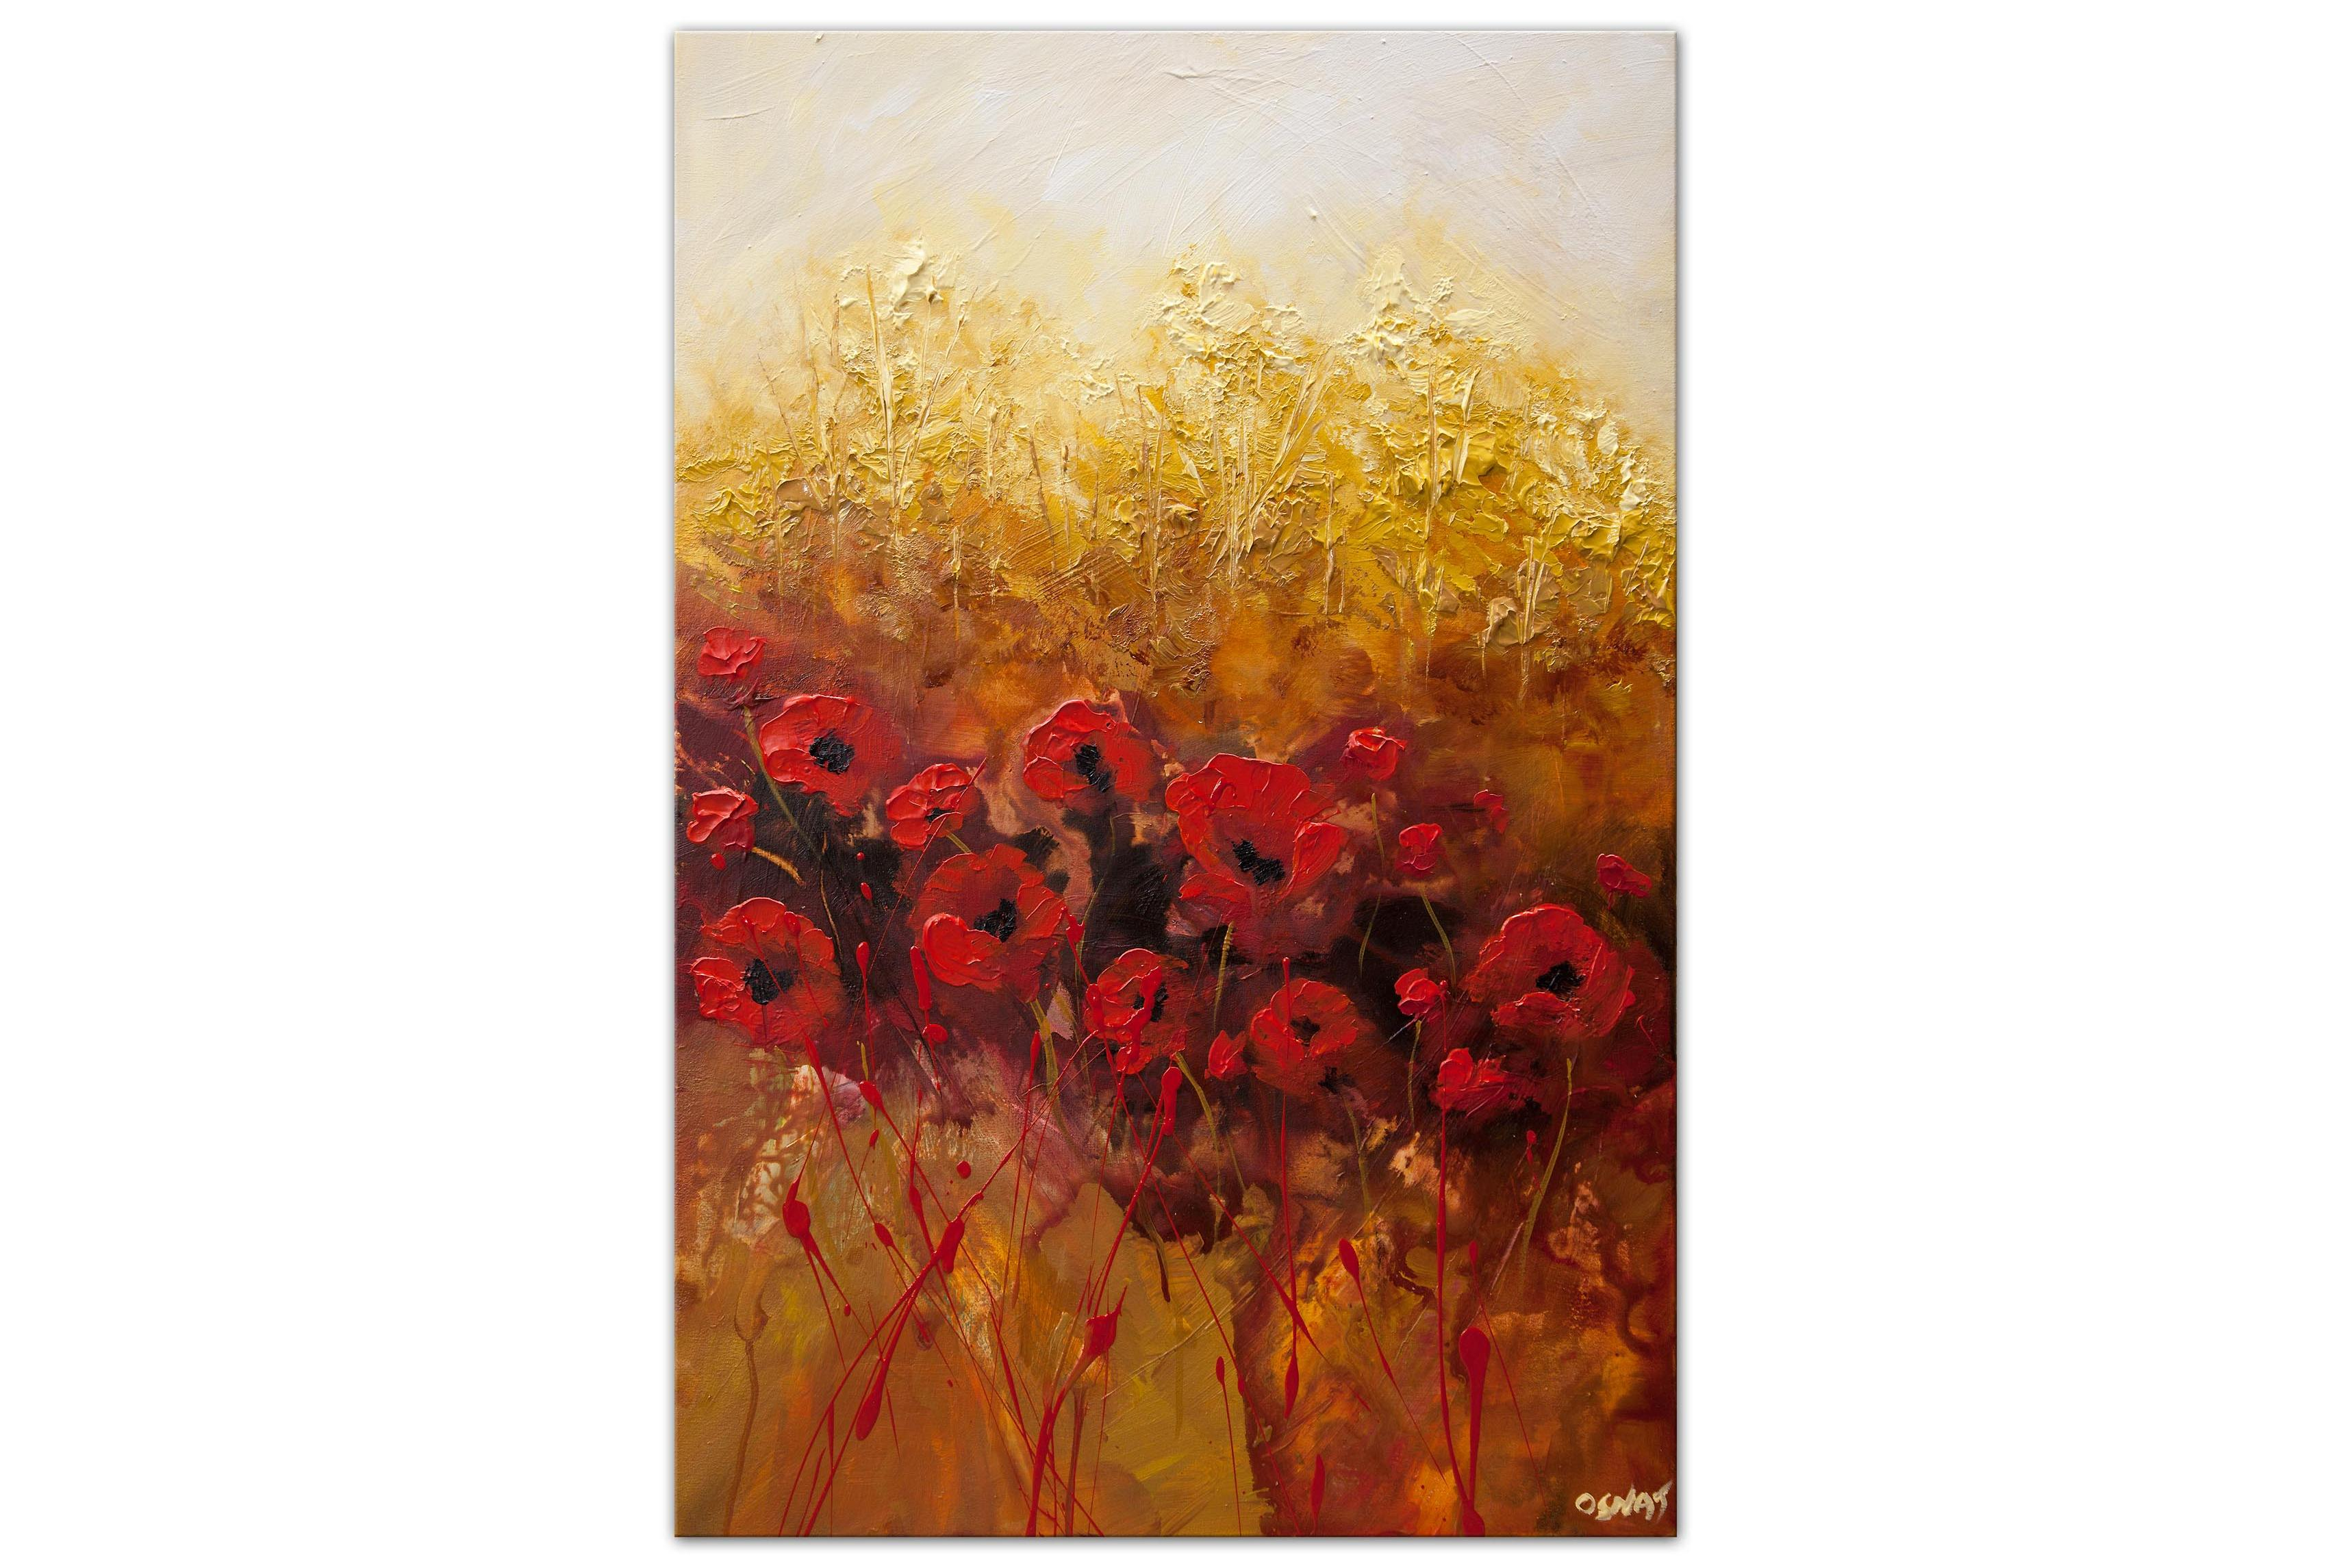 textured red poppies abstract painting